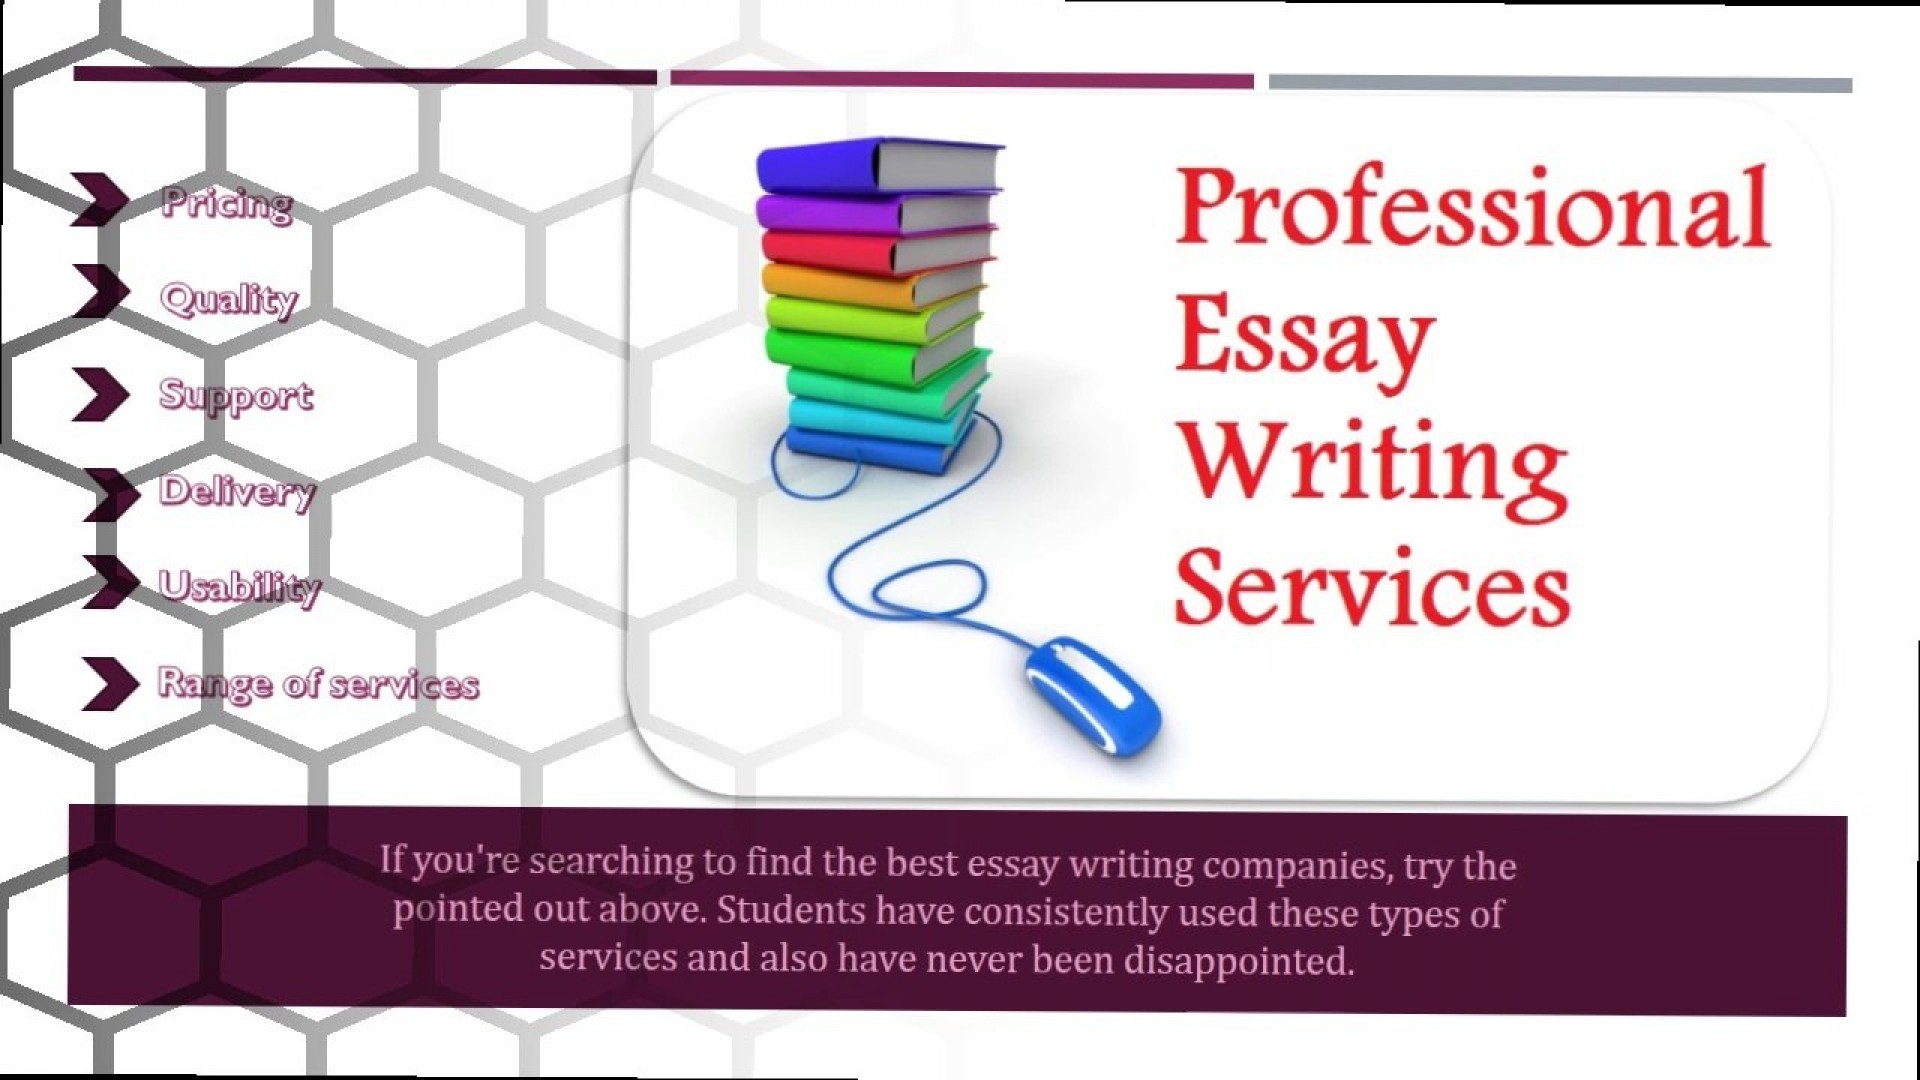 003 Essay Example Best Writing Companies Service Reviews Online Professional Services Uk 1280x72 College Top Websites Sites 1920